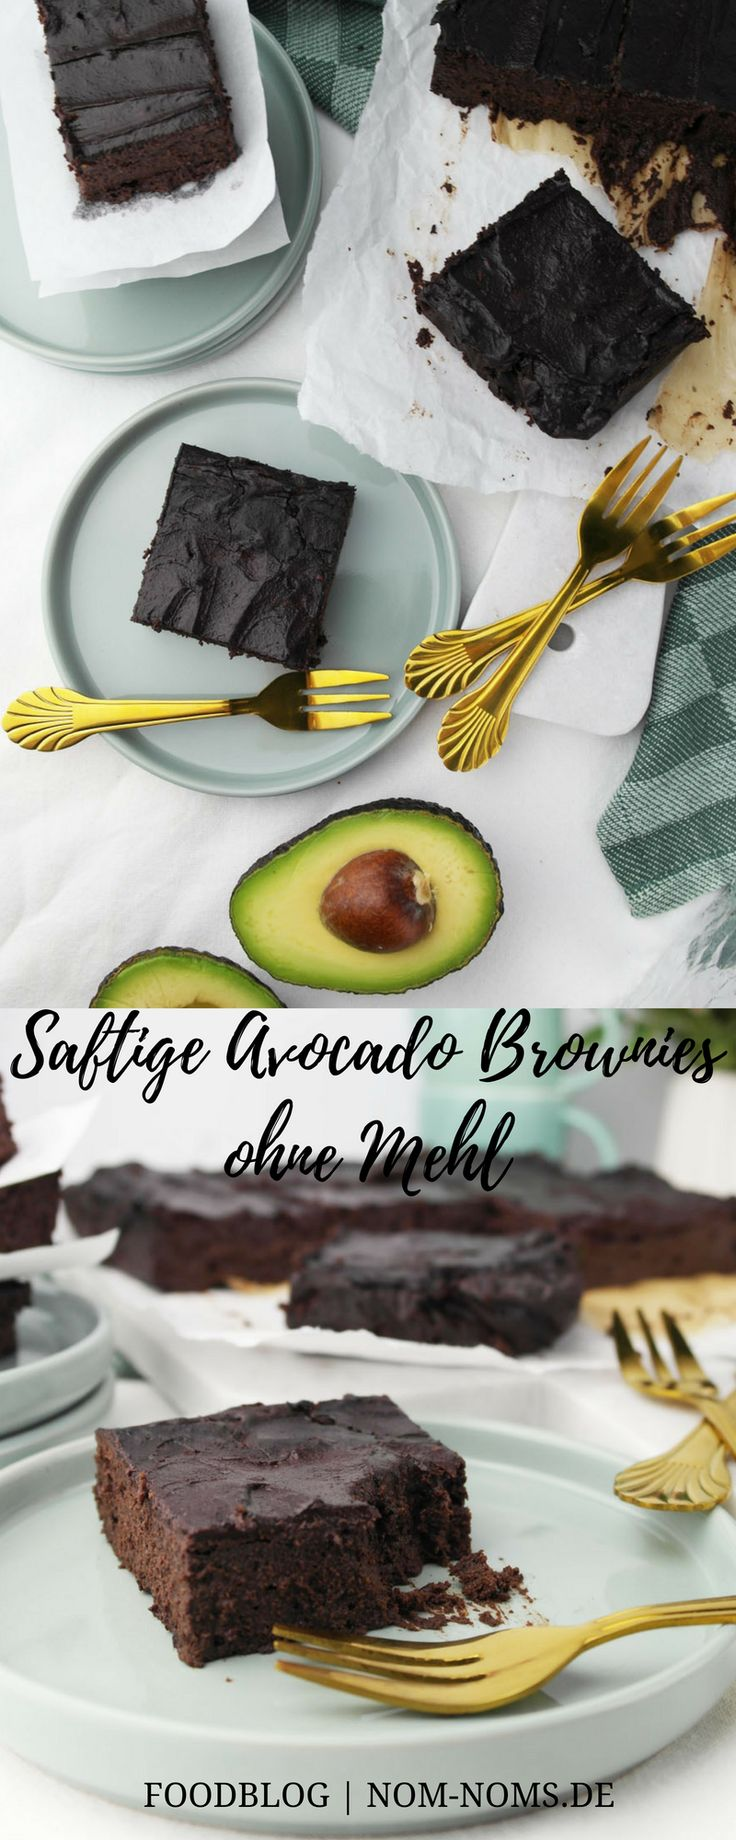 Juicy avocado brownies without flour